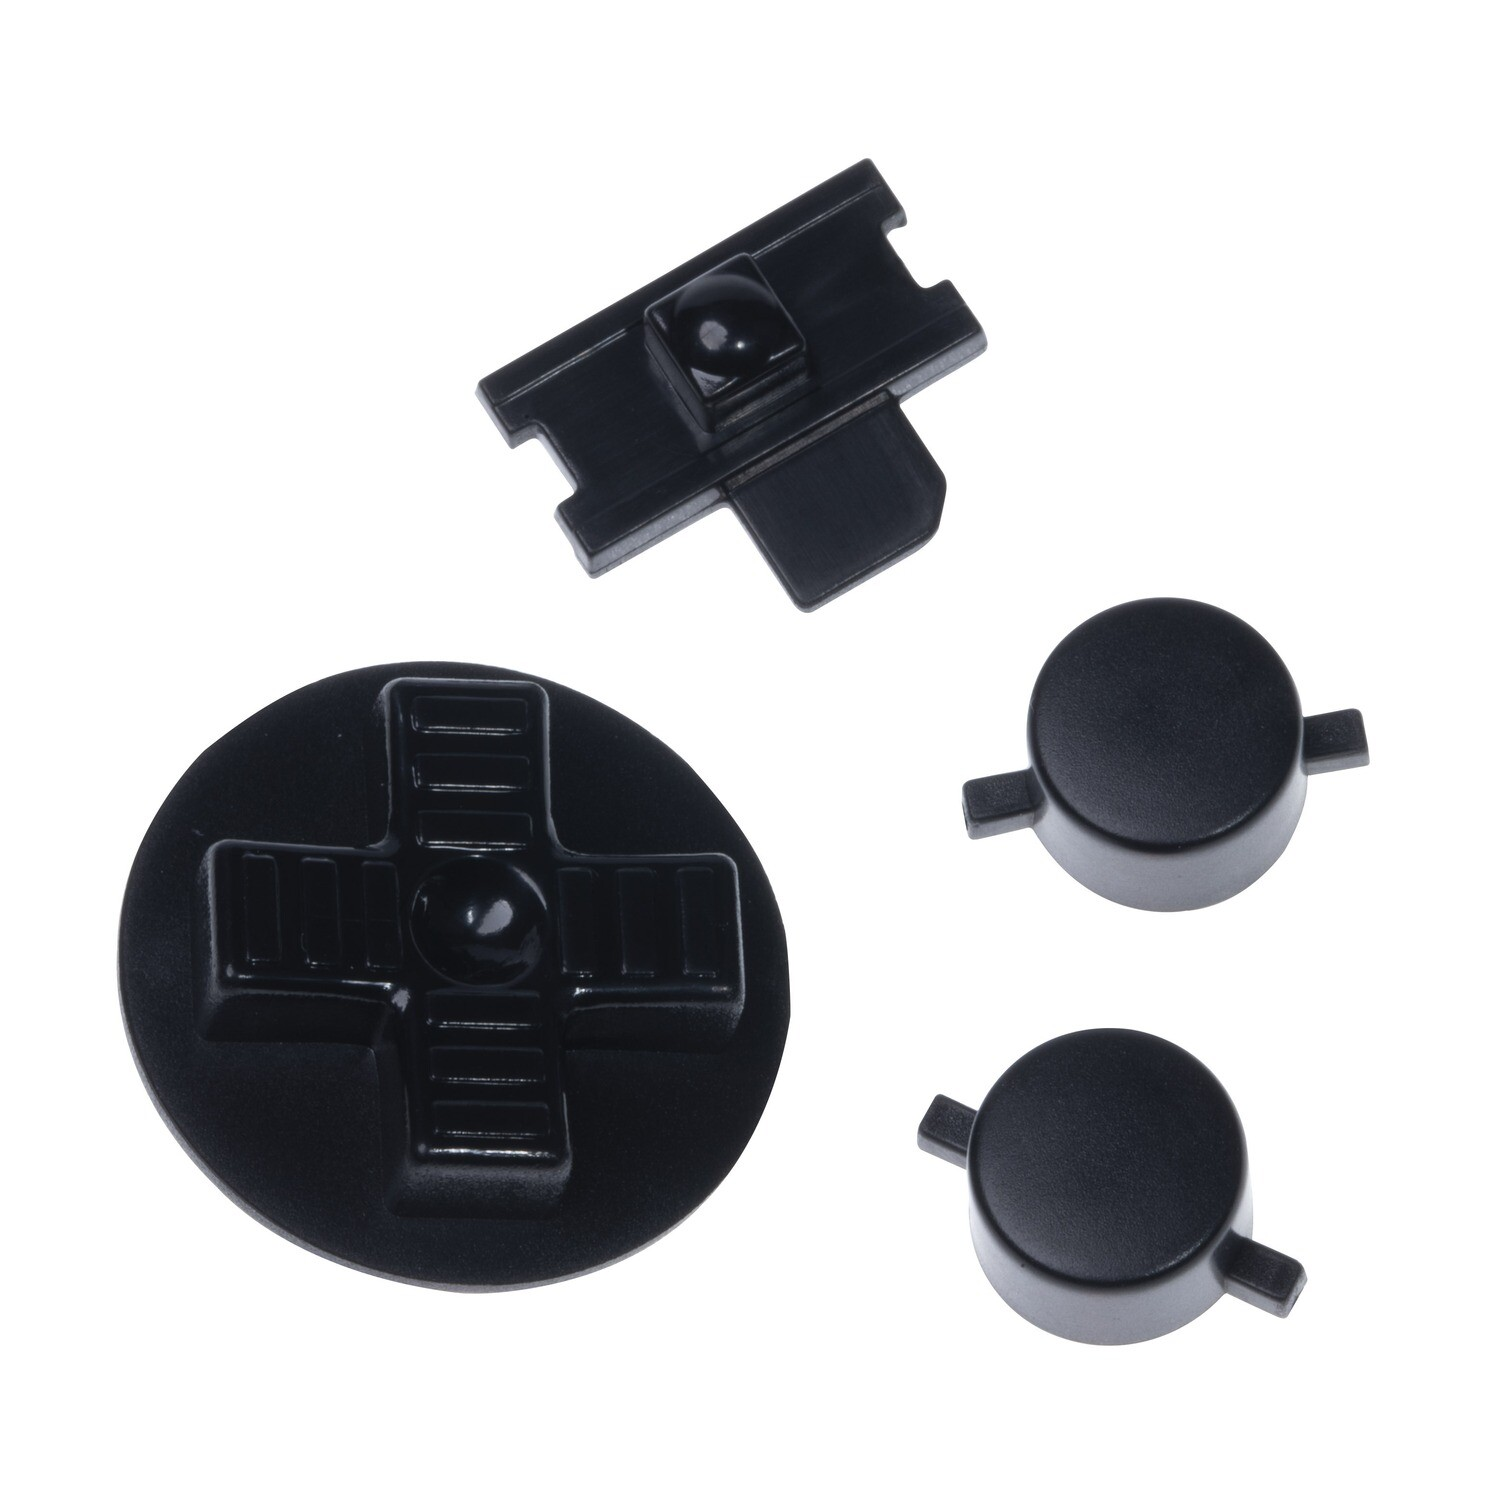 Game Boy Original Buttons (Black)